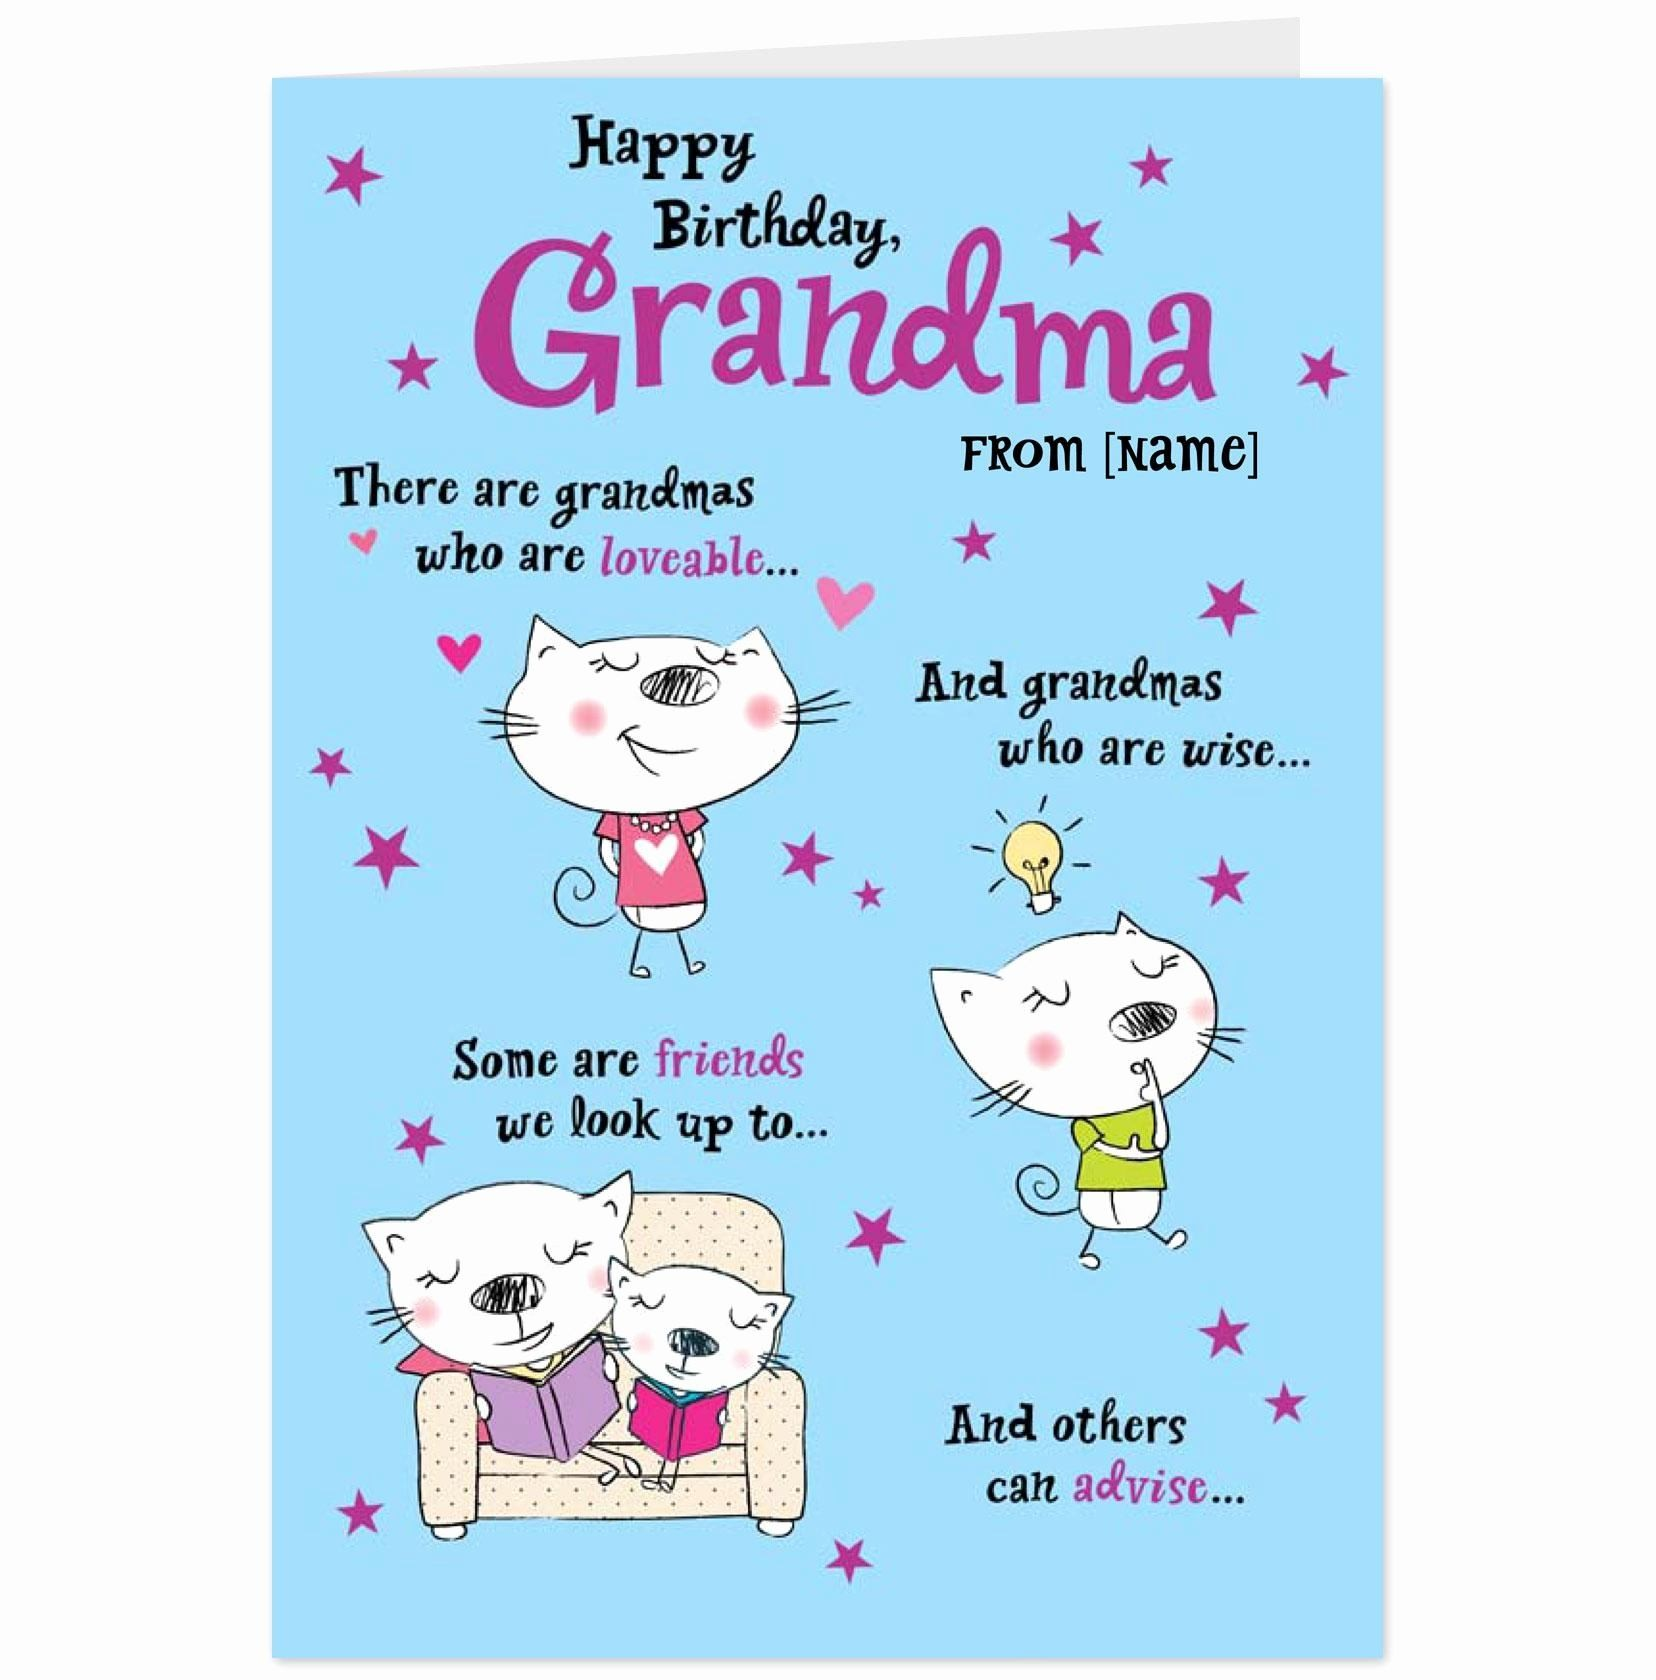 46 birthday poem ; happy-birthday-quotes-for-grandma-awesome-funny-greetings-quotes-choice-image-greeting-card-examples-of-happy-birthday-quotes-for-grandma